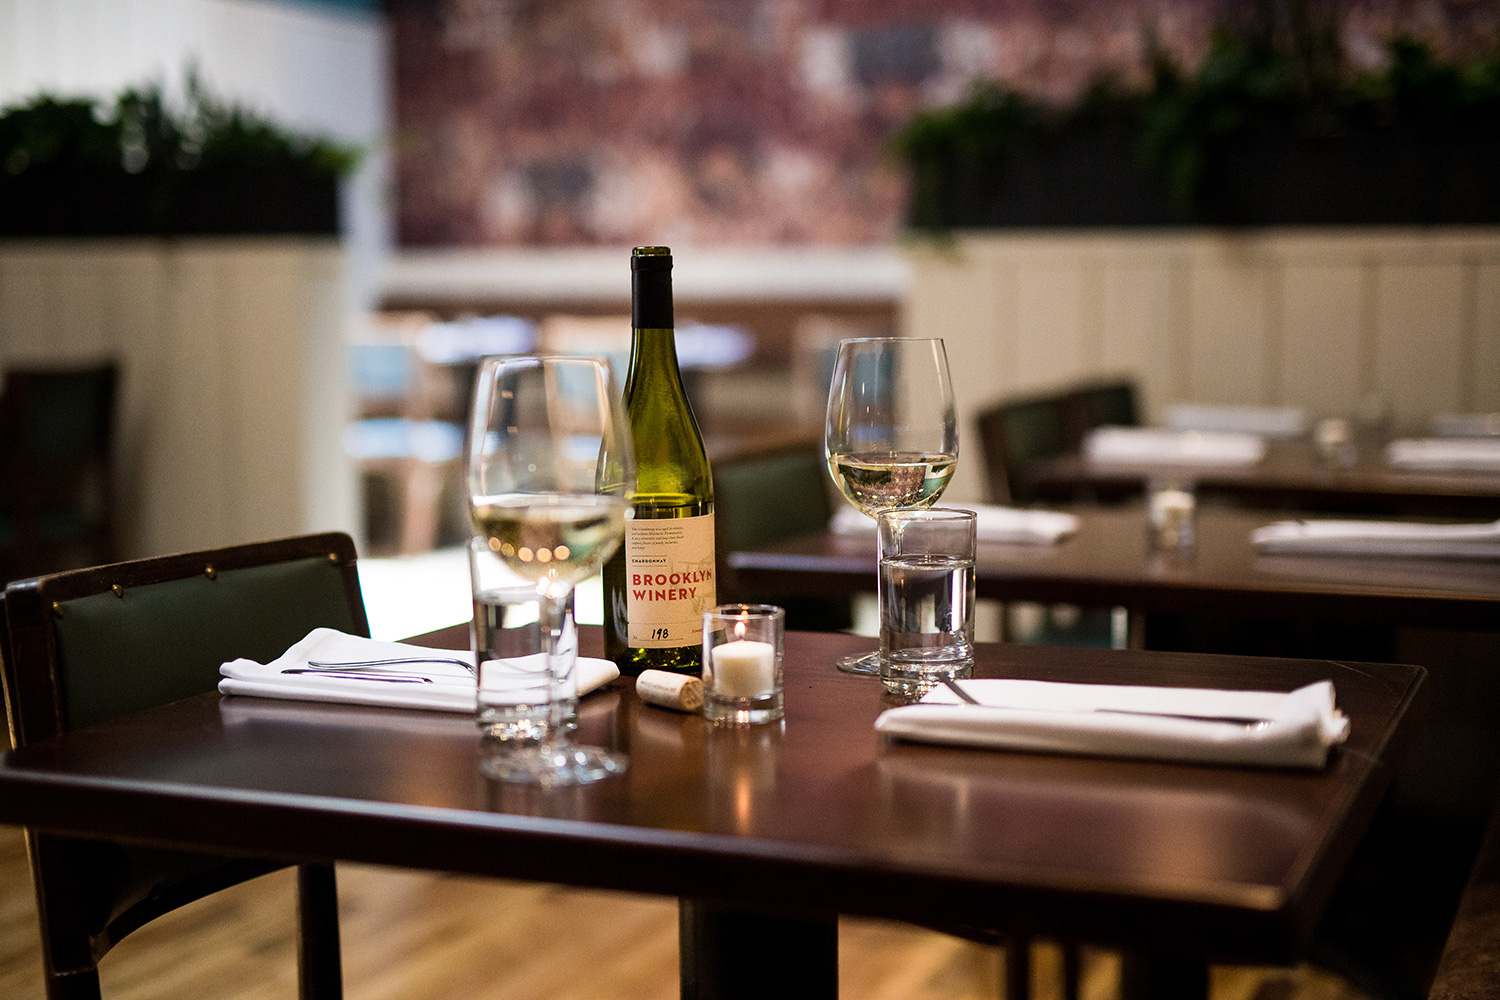 Brooklyn Winery's New Restaurant BKW Wines & Dines Crown Heights